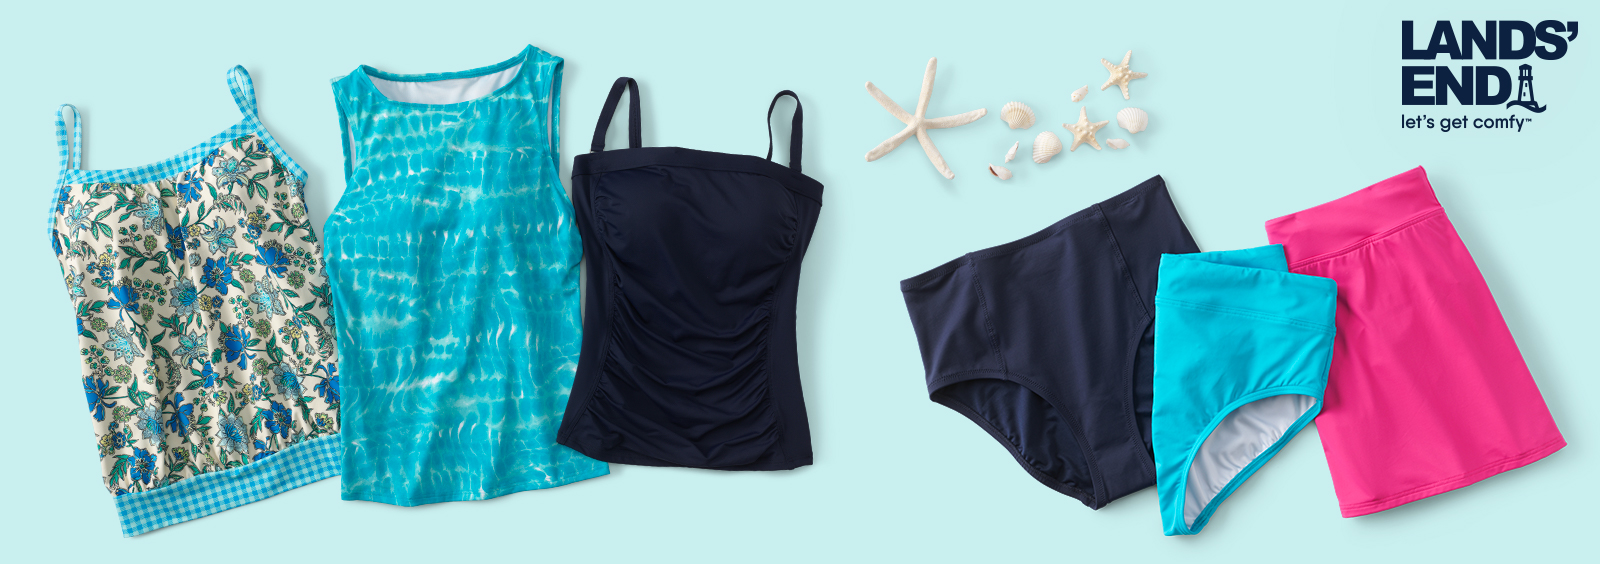 How Often Should You Buy New Bathing Suits